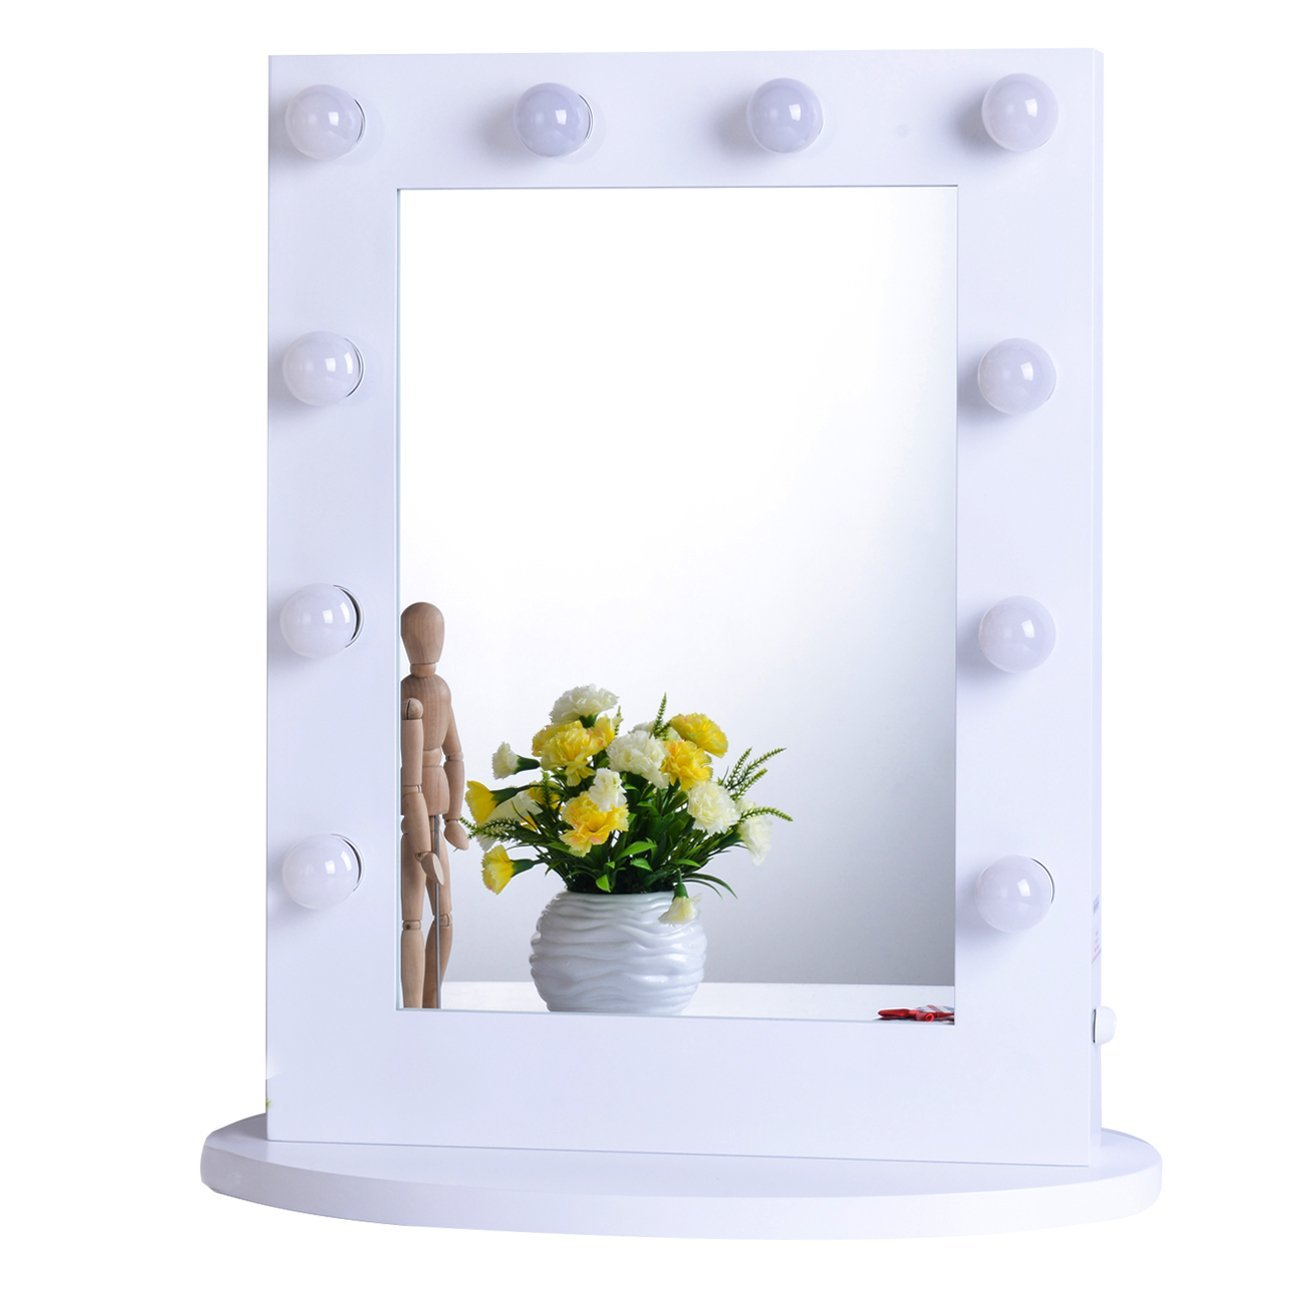 Best Lighted Makeup Mirror | Vanity Mirror with Light Bulbs | Tabletop Vanity Mirror